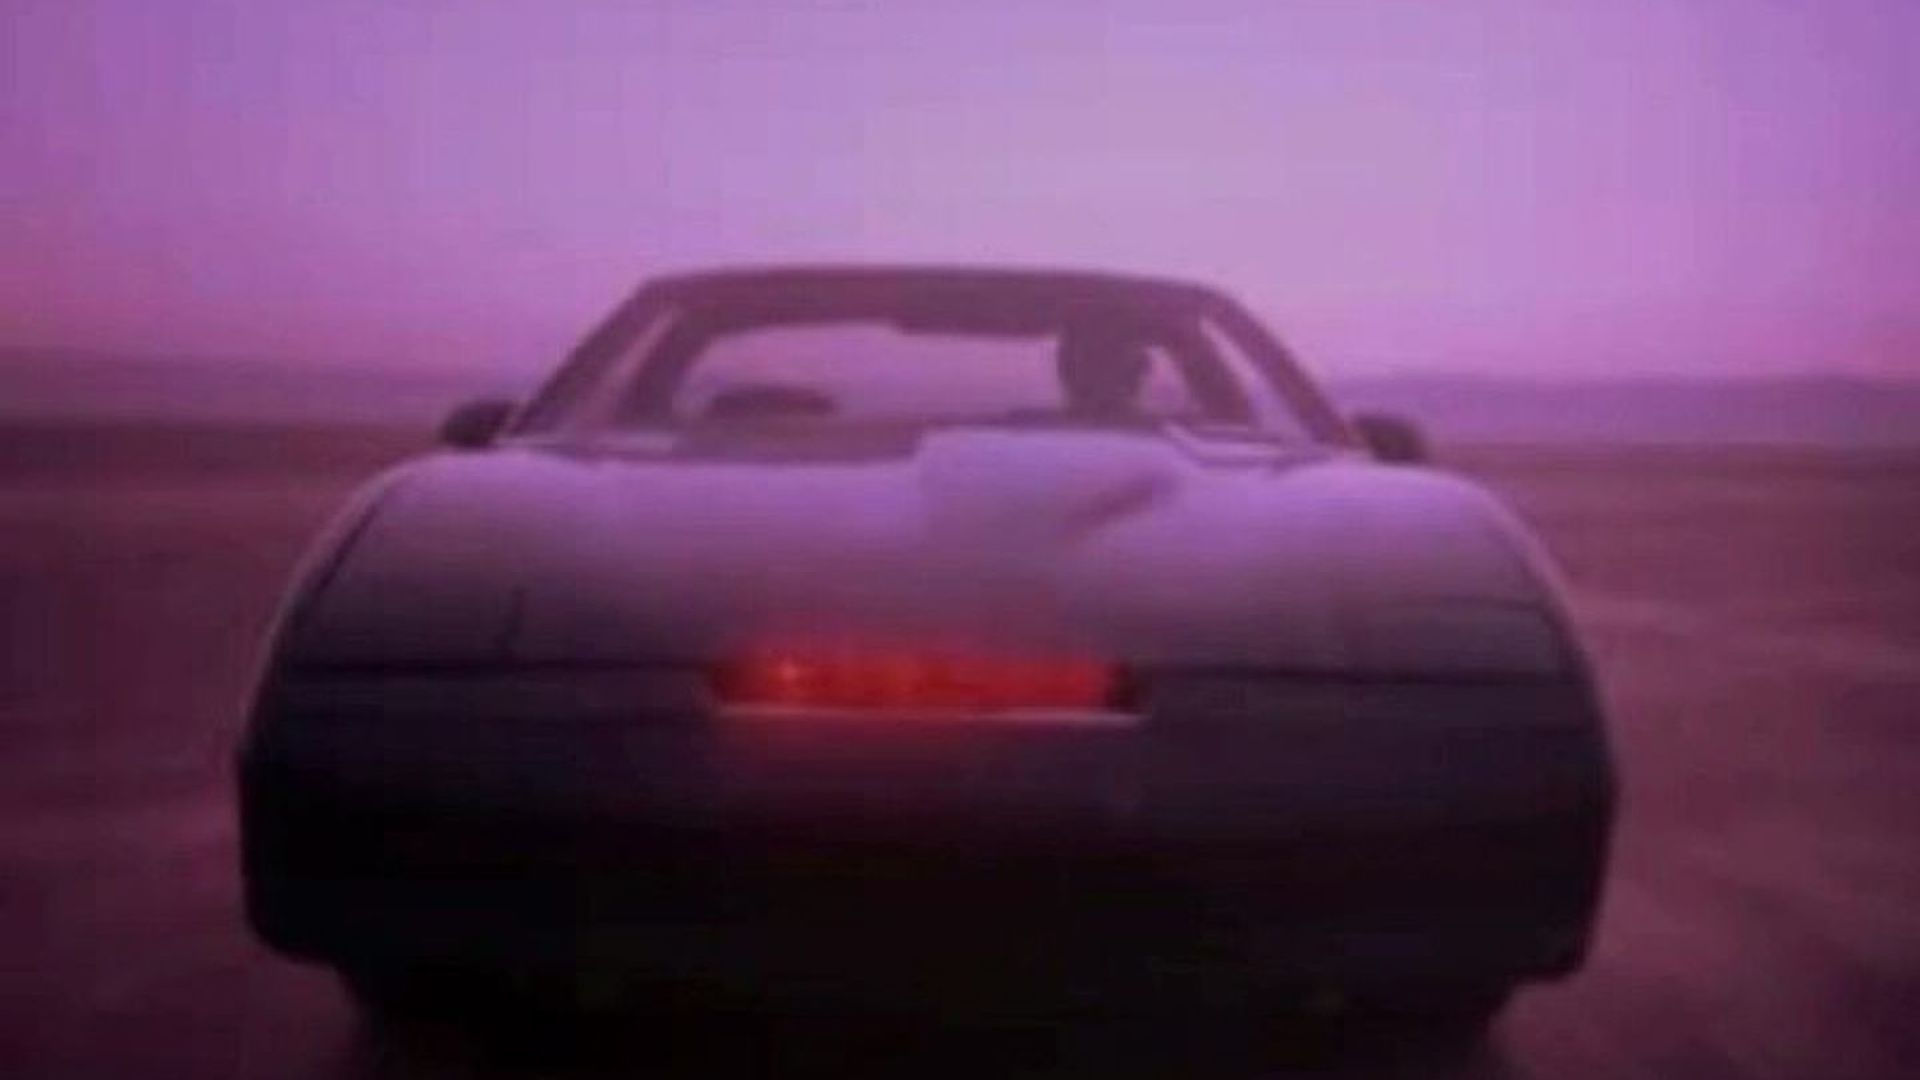 New 'Knight Rider' Project Planned